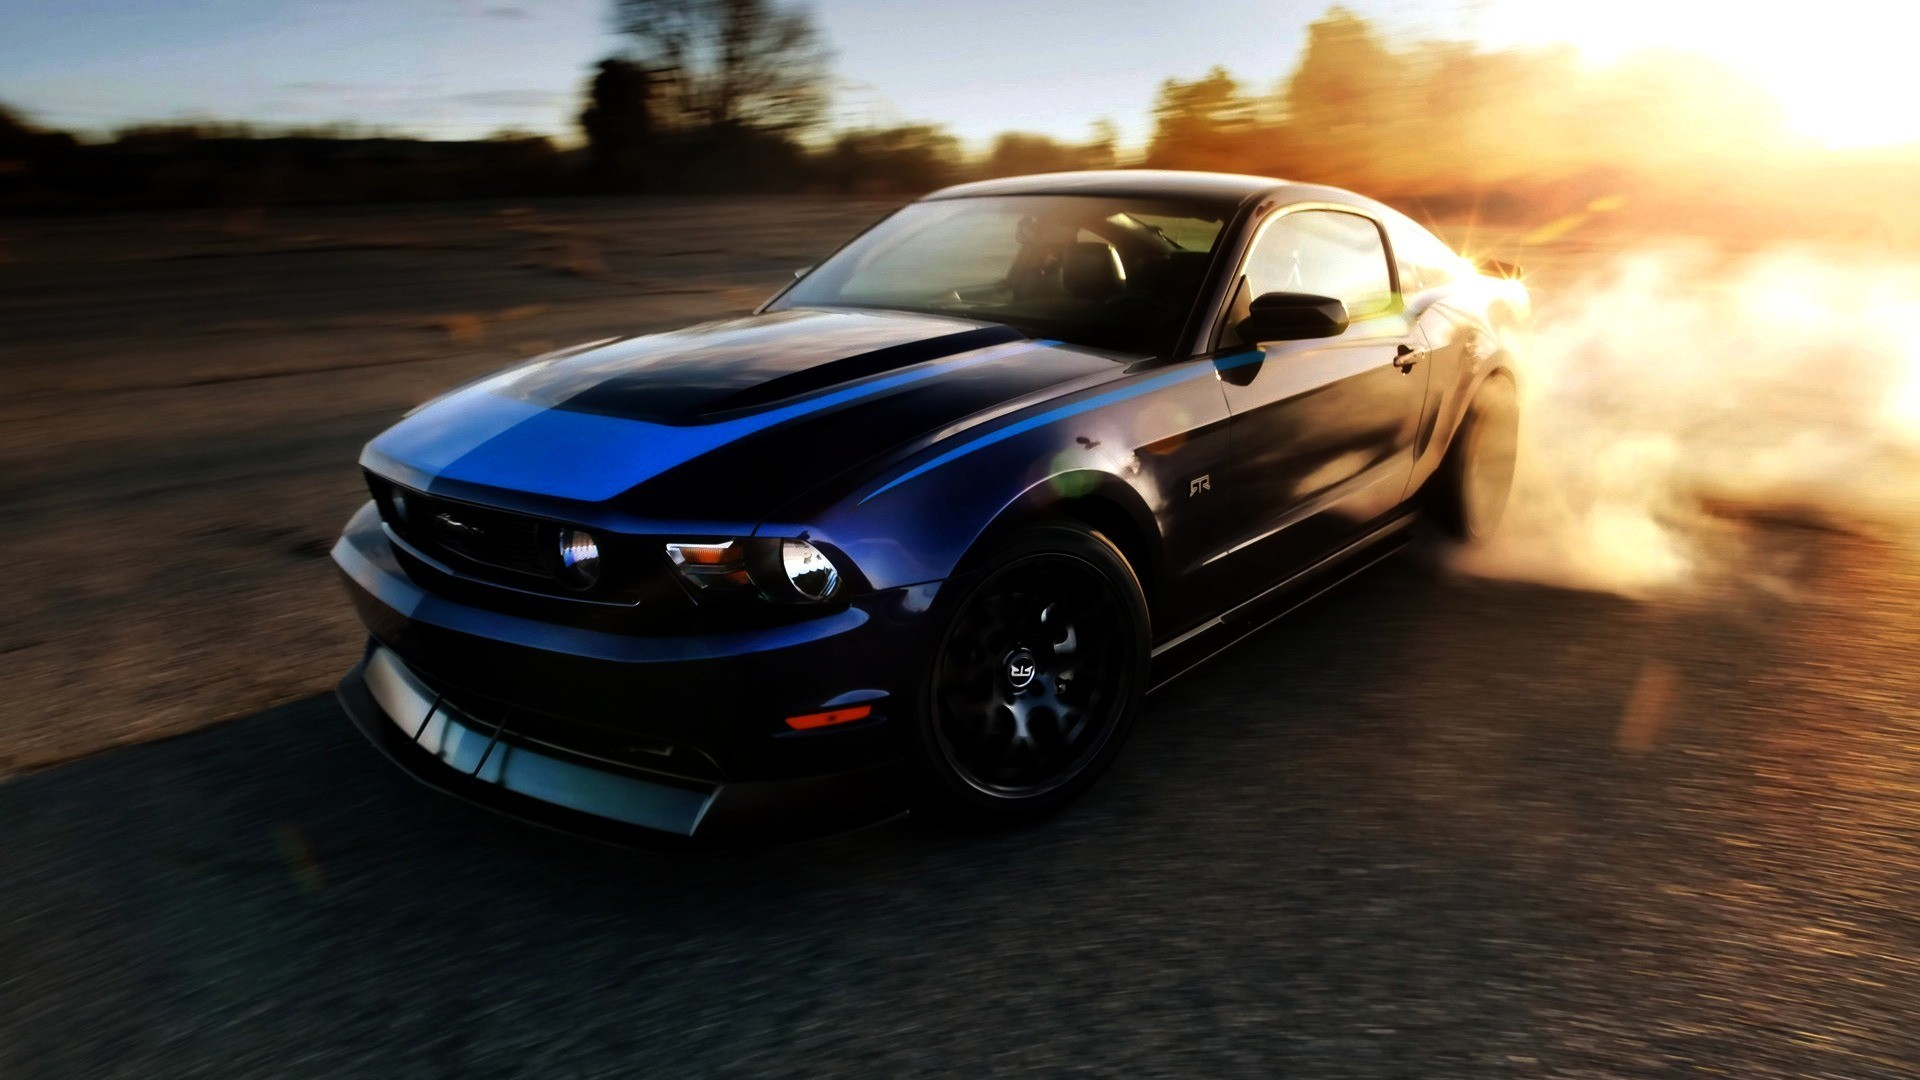 Cars Muscle Wallpaper Cars, Muscle, Cars, Dust, Ford .